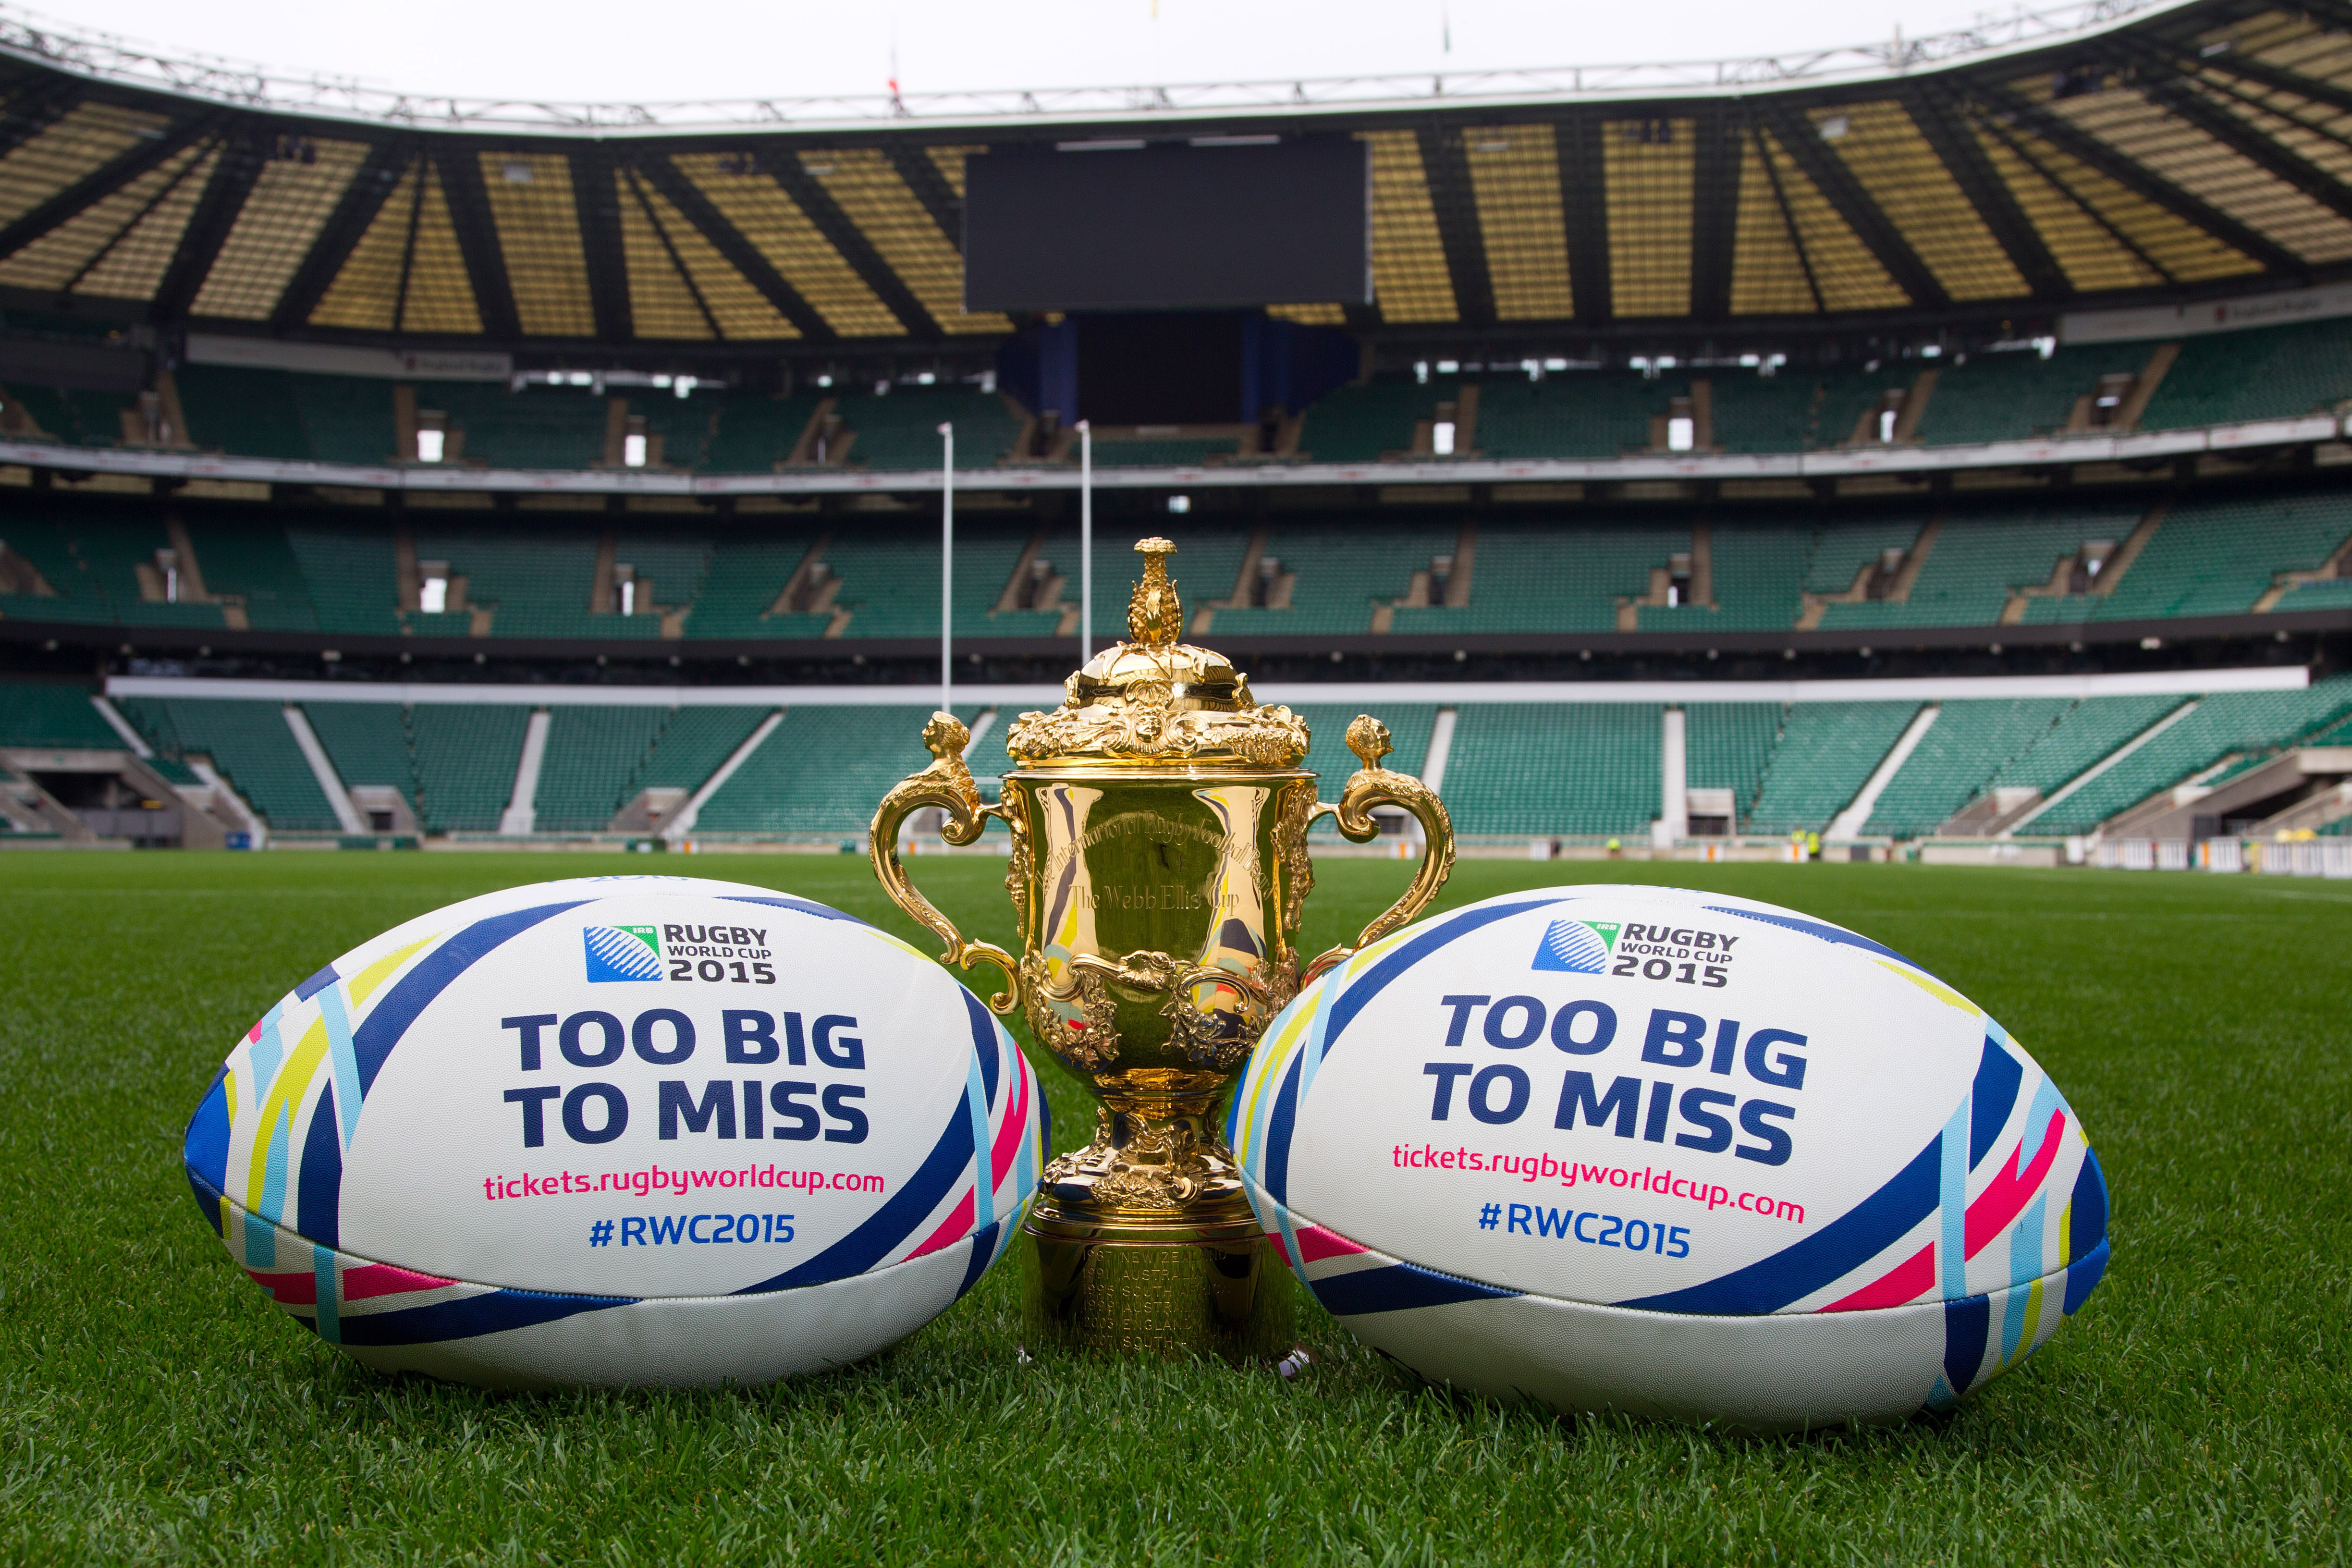 4896x3264 - Rugby World Cup 2015 Wallpapers 2